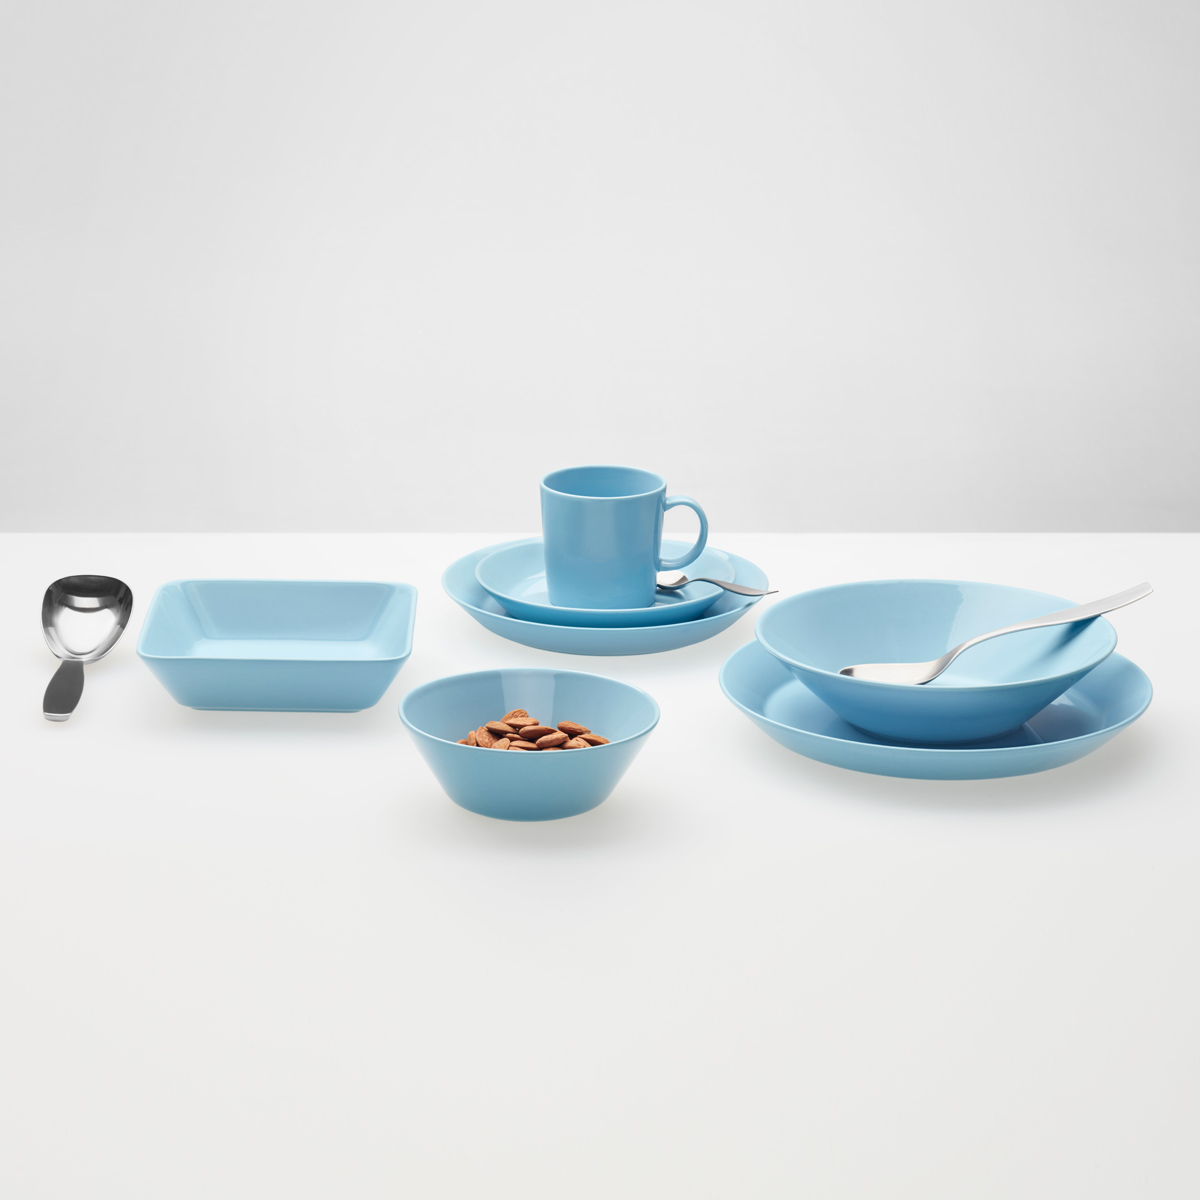 iittala teema light blue dinnerware iittala teema. Black Bedroom Furniture Sets. Home Design Ideas